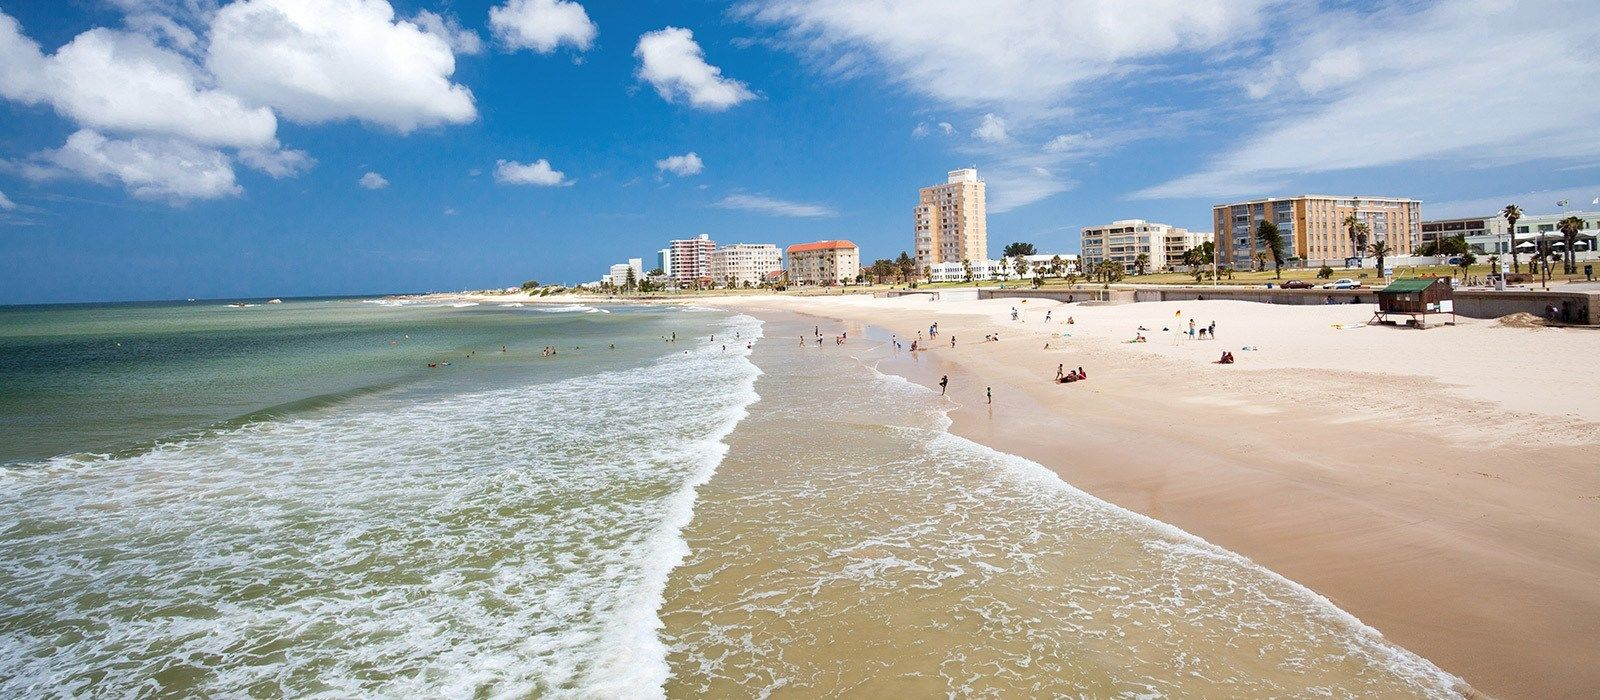 The Best Beaches In Port Elizabeth, South Africa